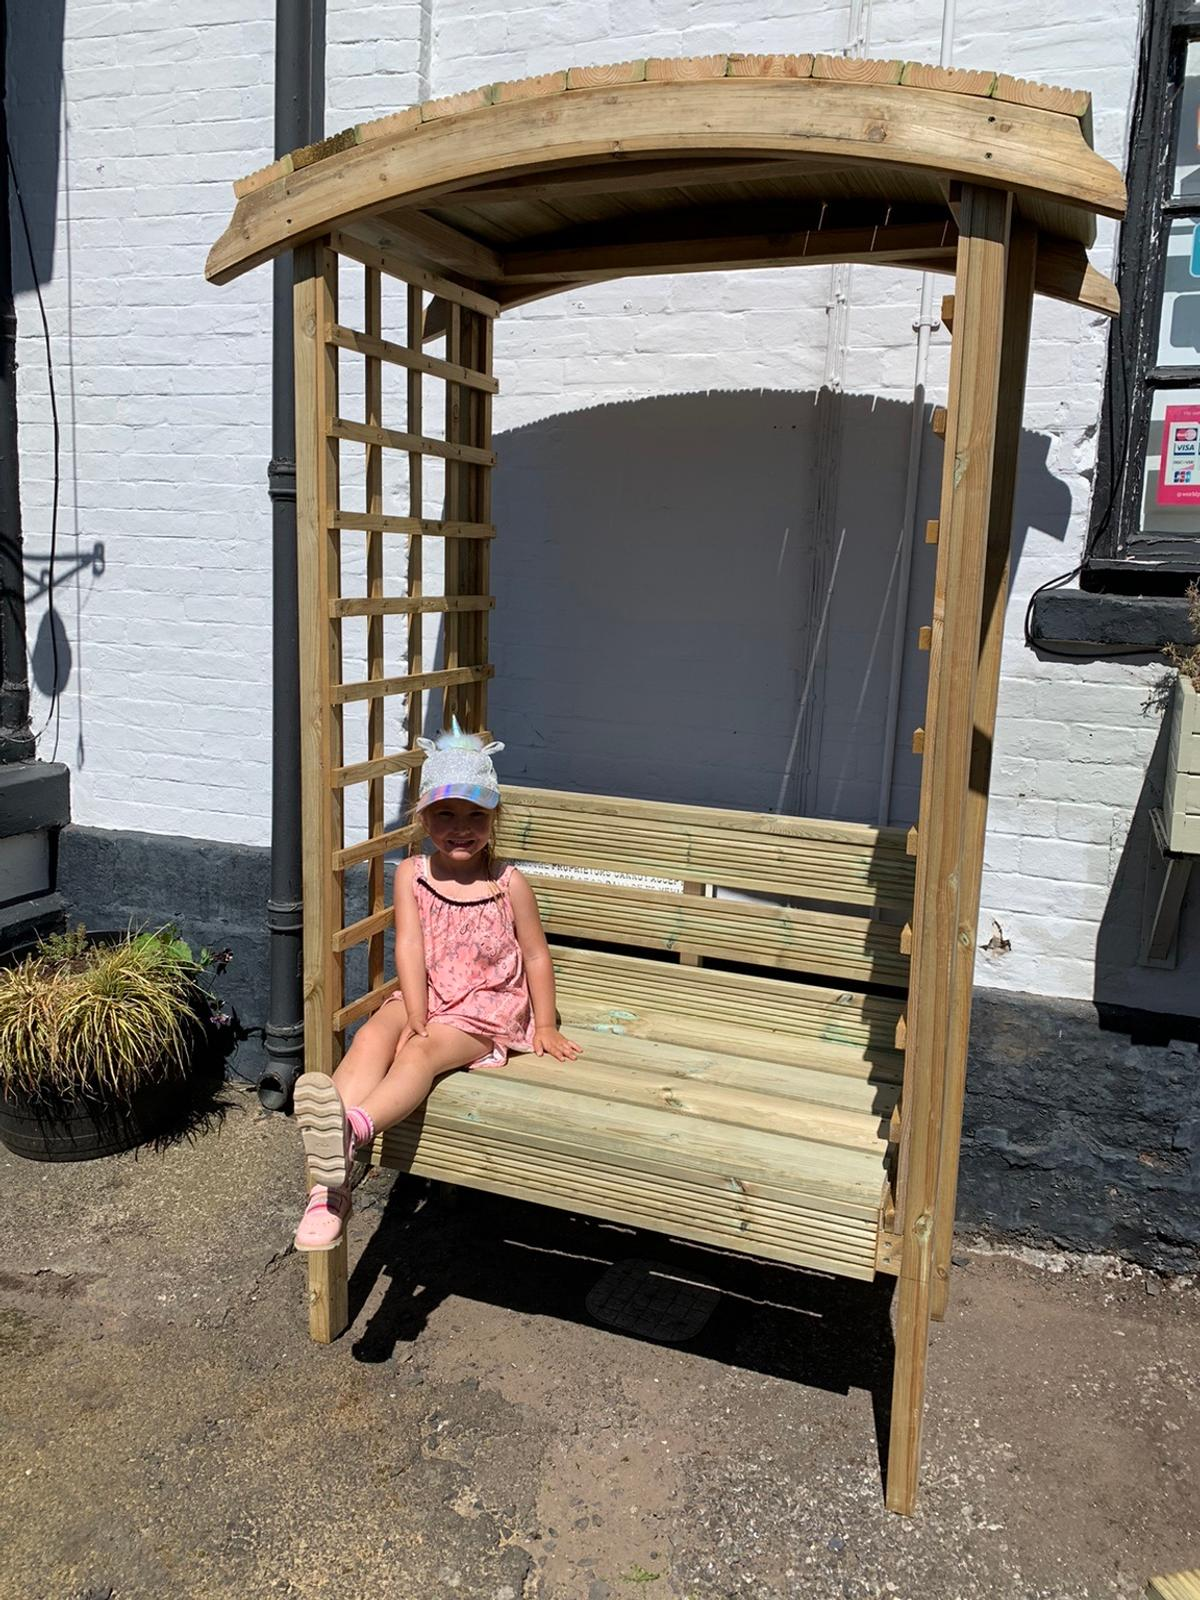 Wooden arbour garden seat unpainted but can be done in a dark varnish finish if needed. These as well as other items can also be made to order. Collection of possible delivery but please ask for delivery availability. Sizes are height 7 ft x width 56 inches x depth 27.5 inches.